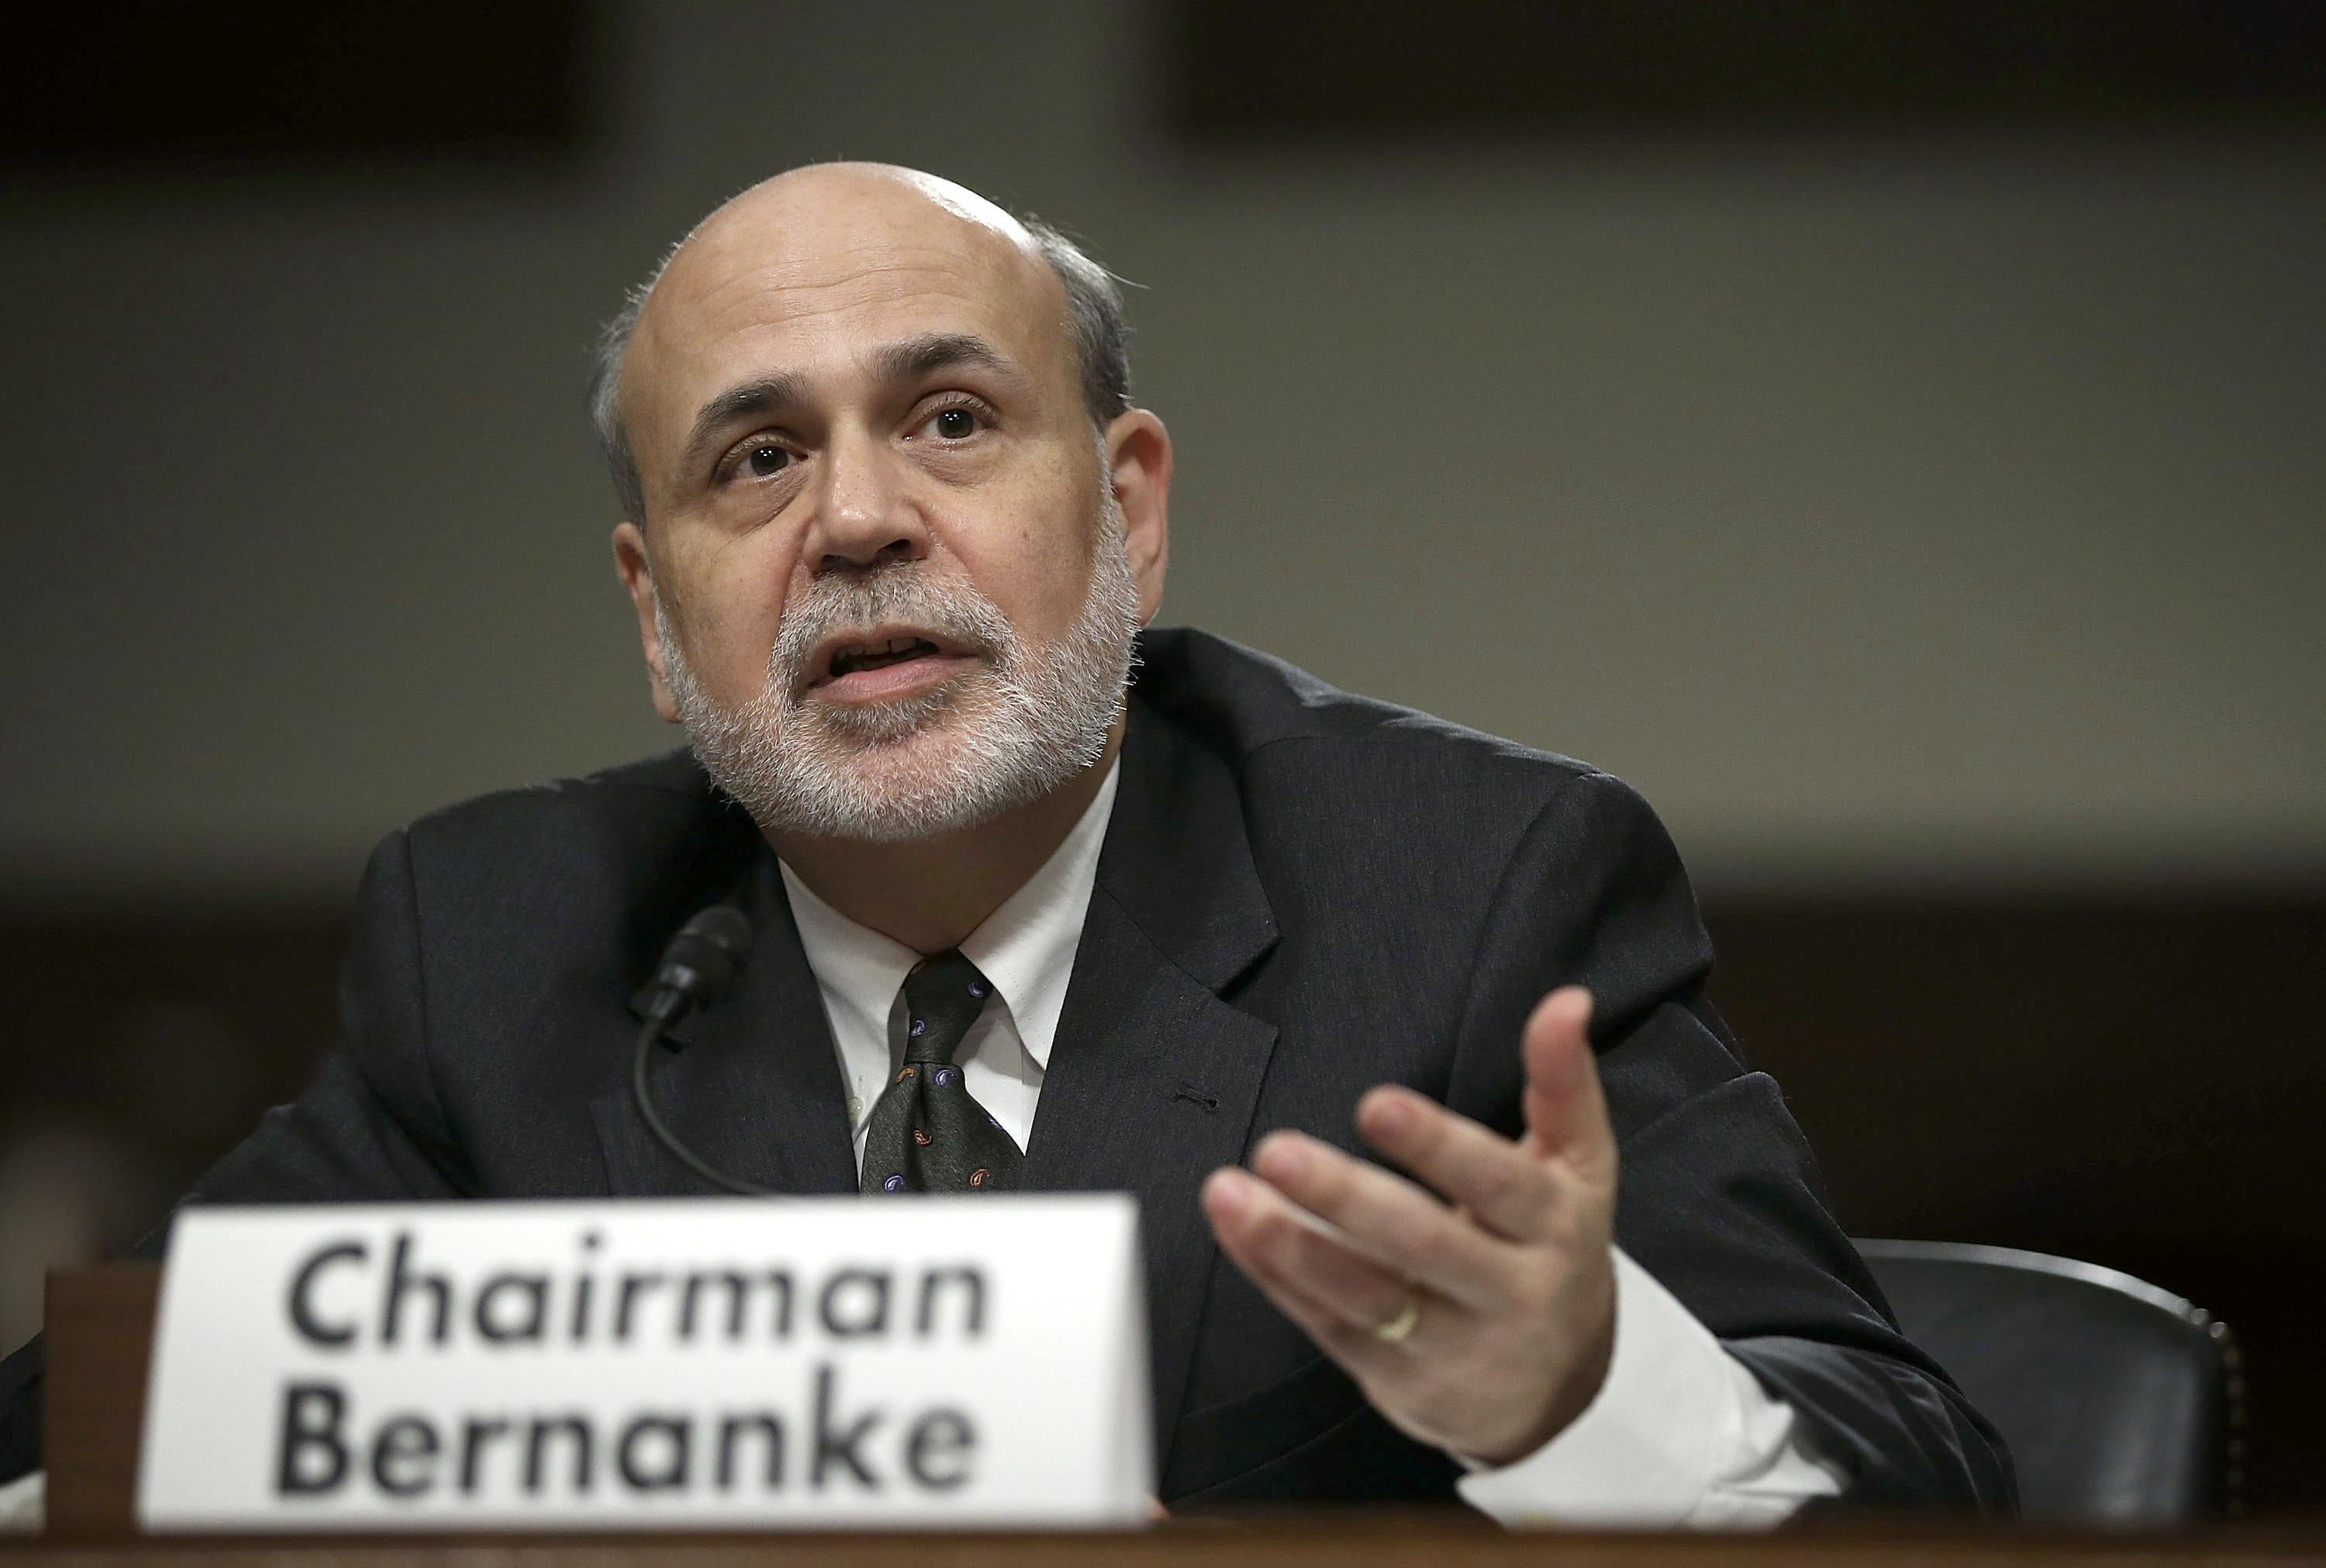 Federal Reserve Board Chairman Ben Bernanke testifies during a hearing before the Joint Economic Committee May 22, 2013, on Capitol Hill in Washington, D.C.